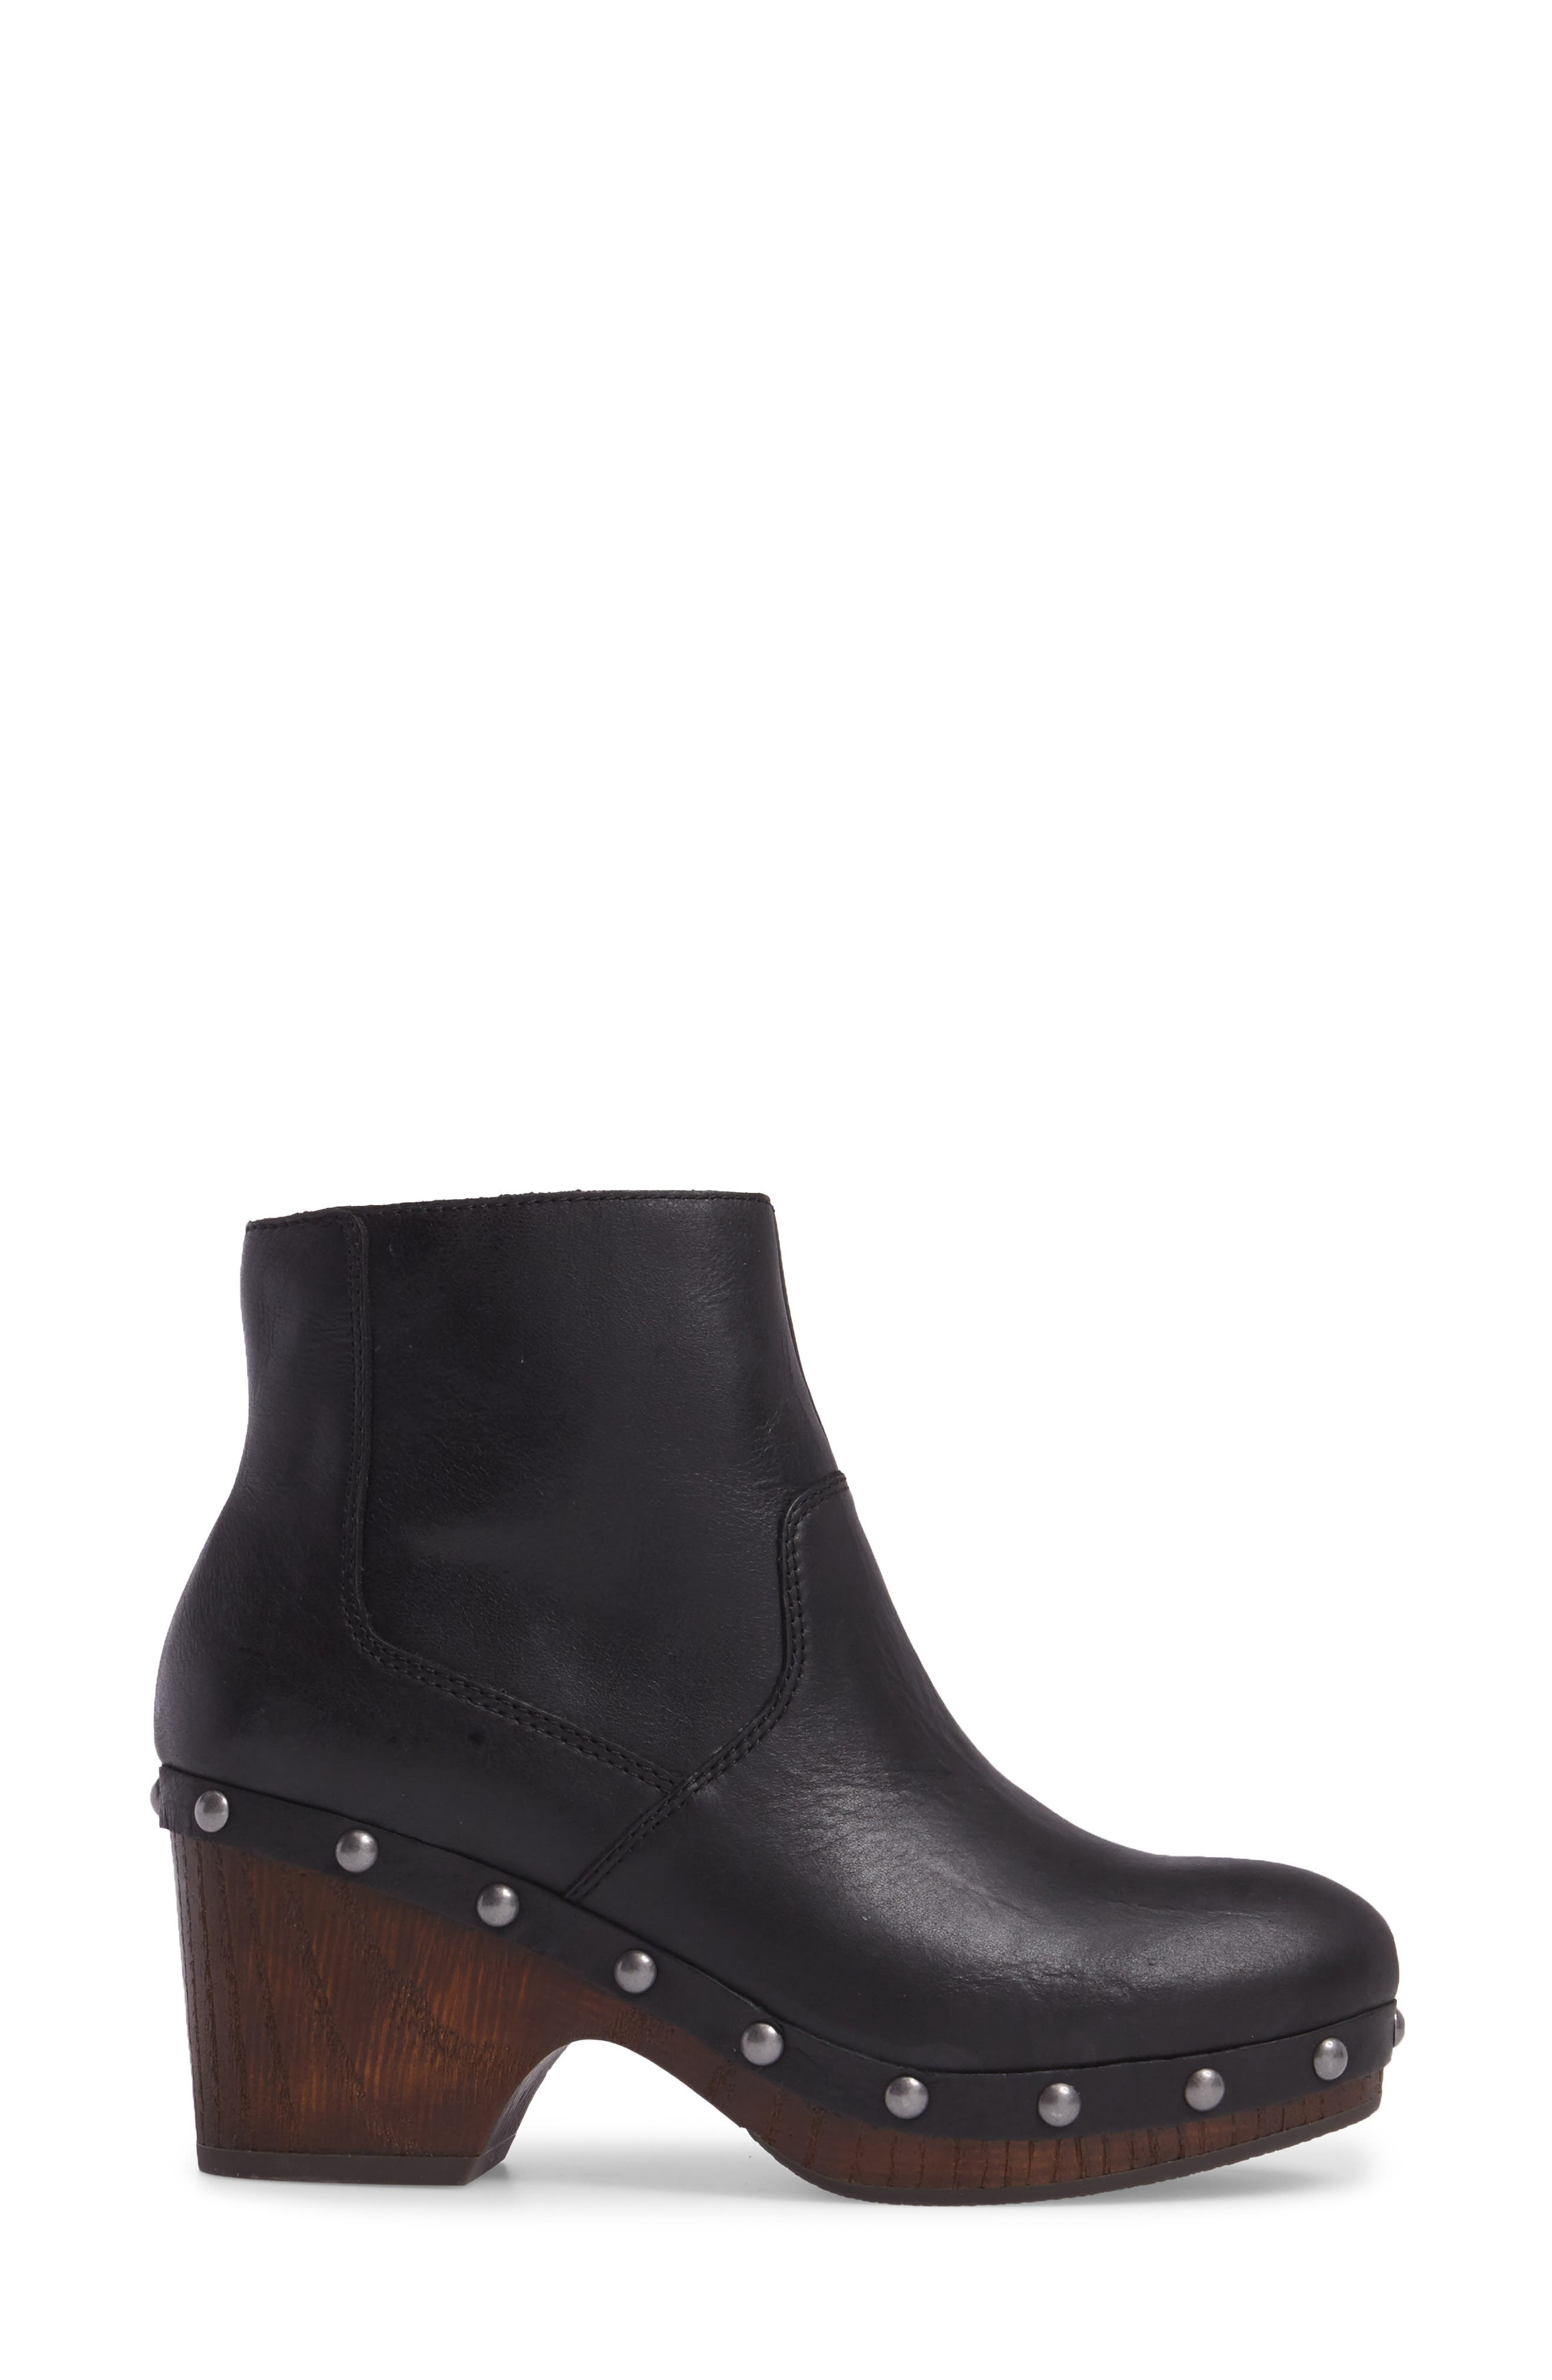 Yasamin Bootie,                             Alternate thumbnail 3, color,                             Black Leather